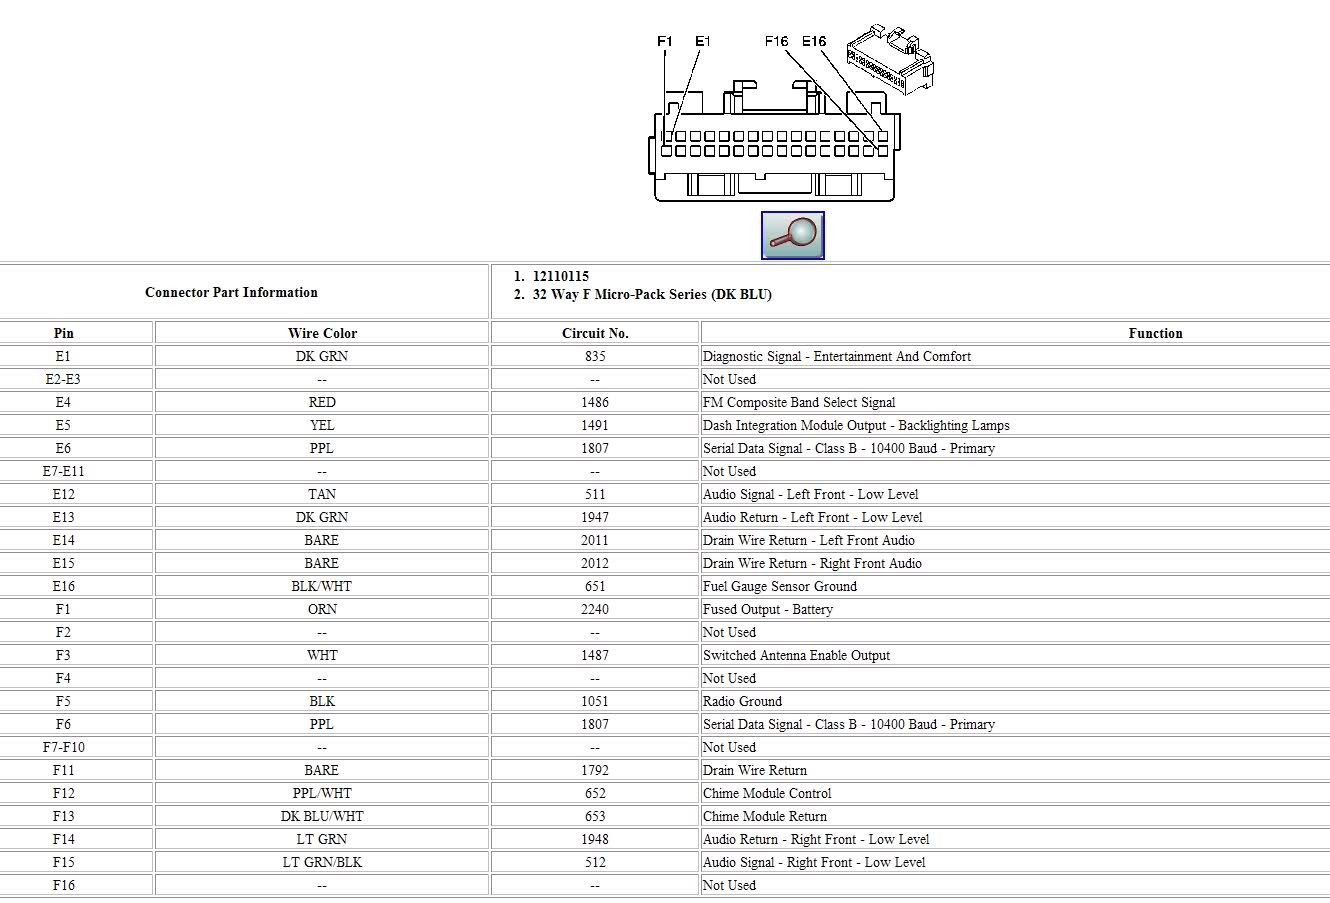 hight resolution of 2004 cadillac radio wiring diagram wiring diagram user 2004 cadillac escalade radio wiring diagram 2004 cadillac